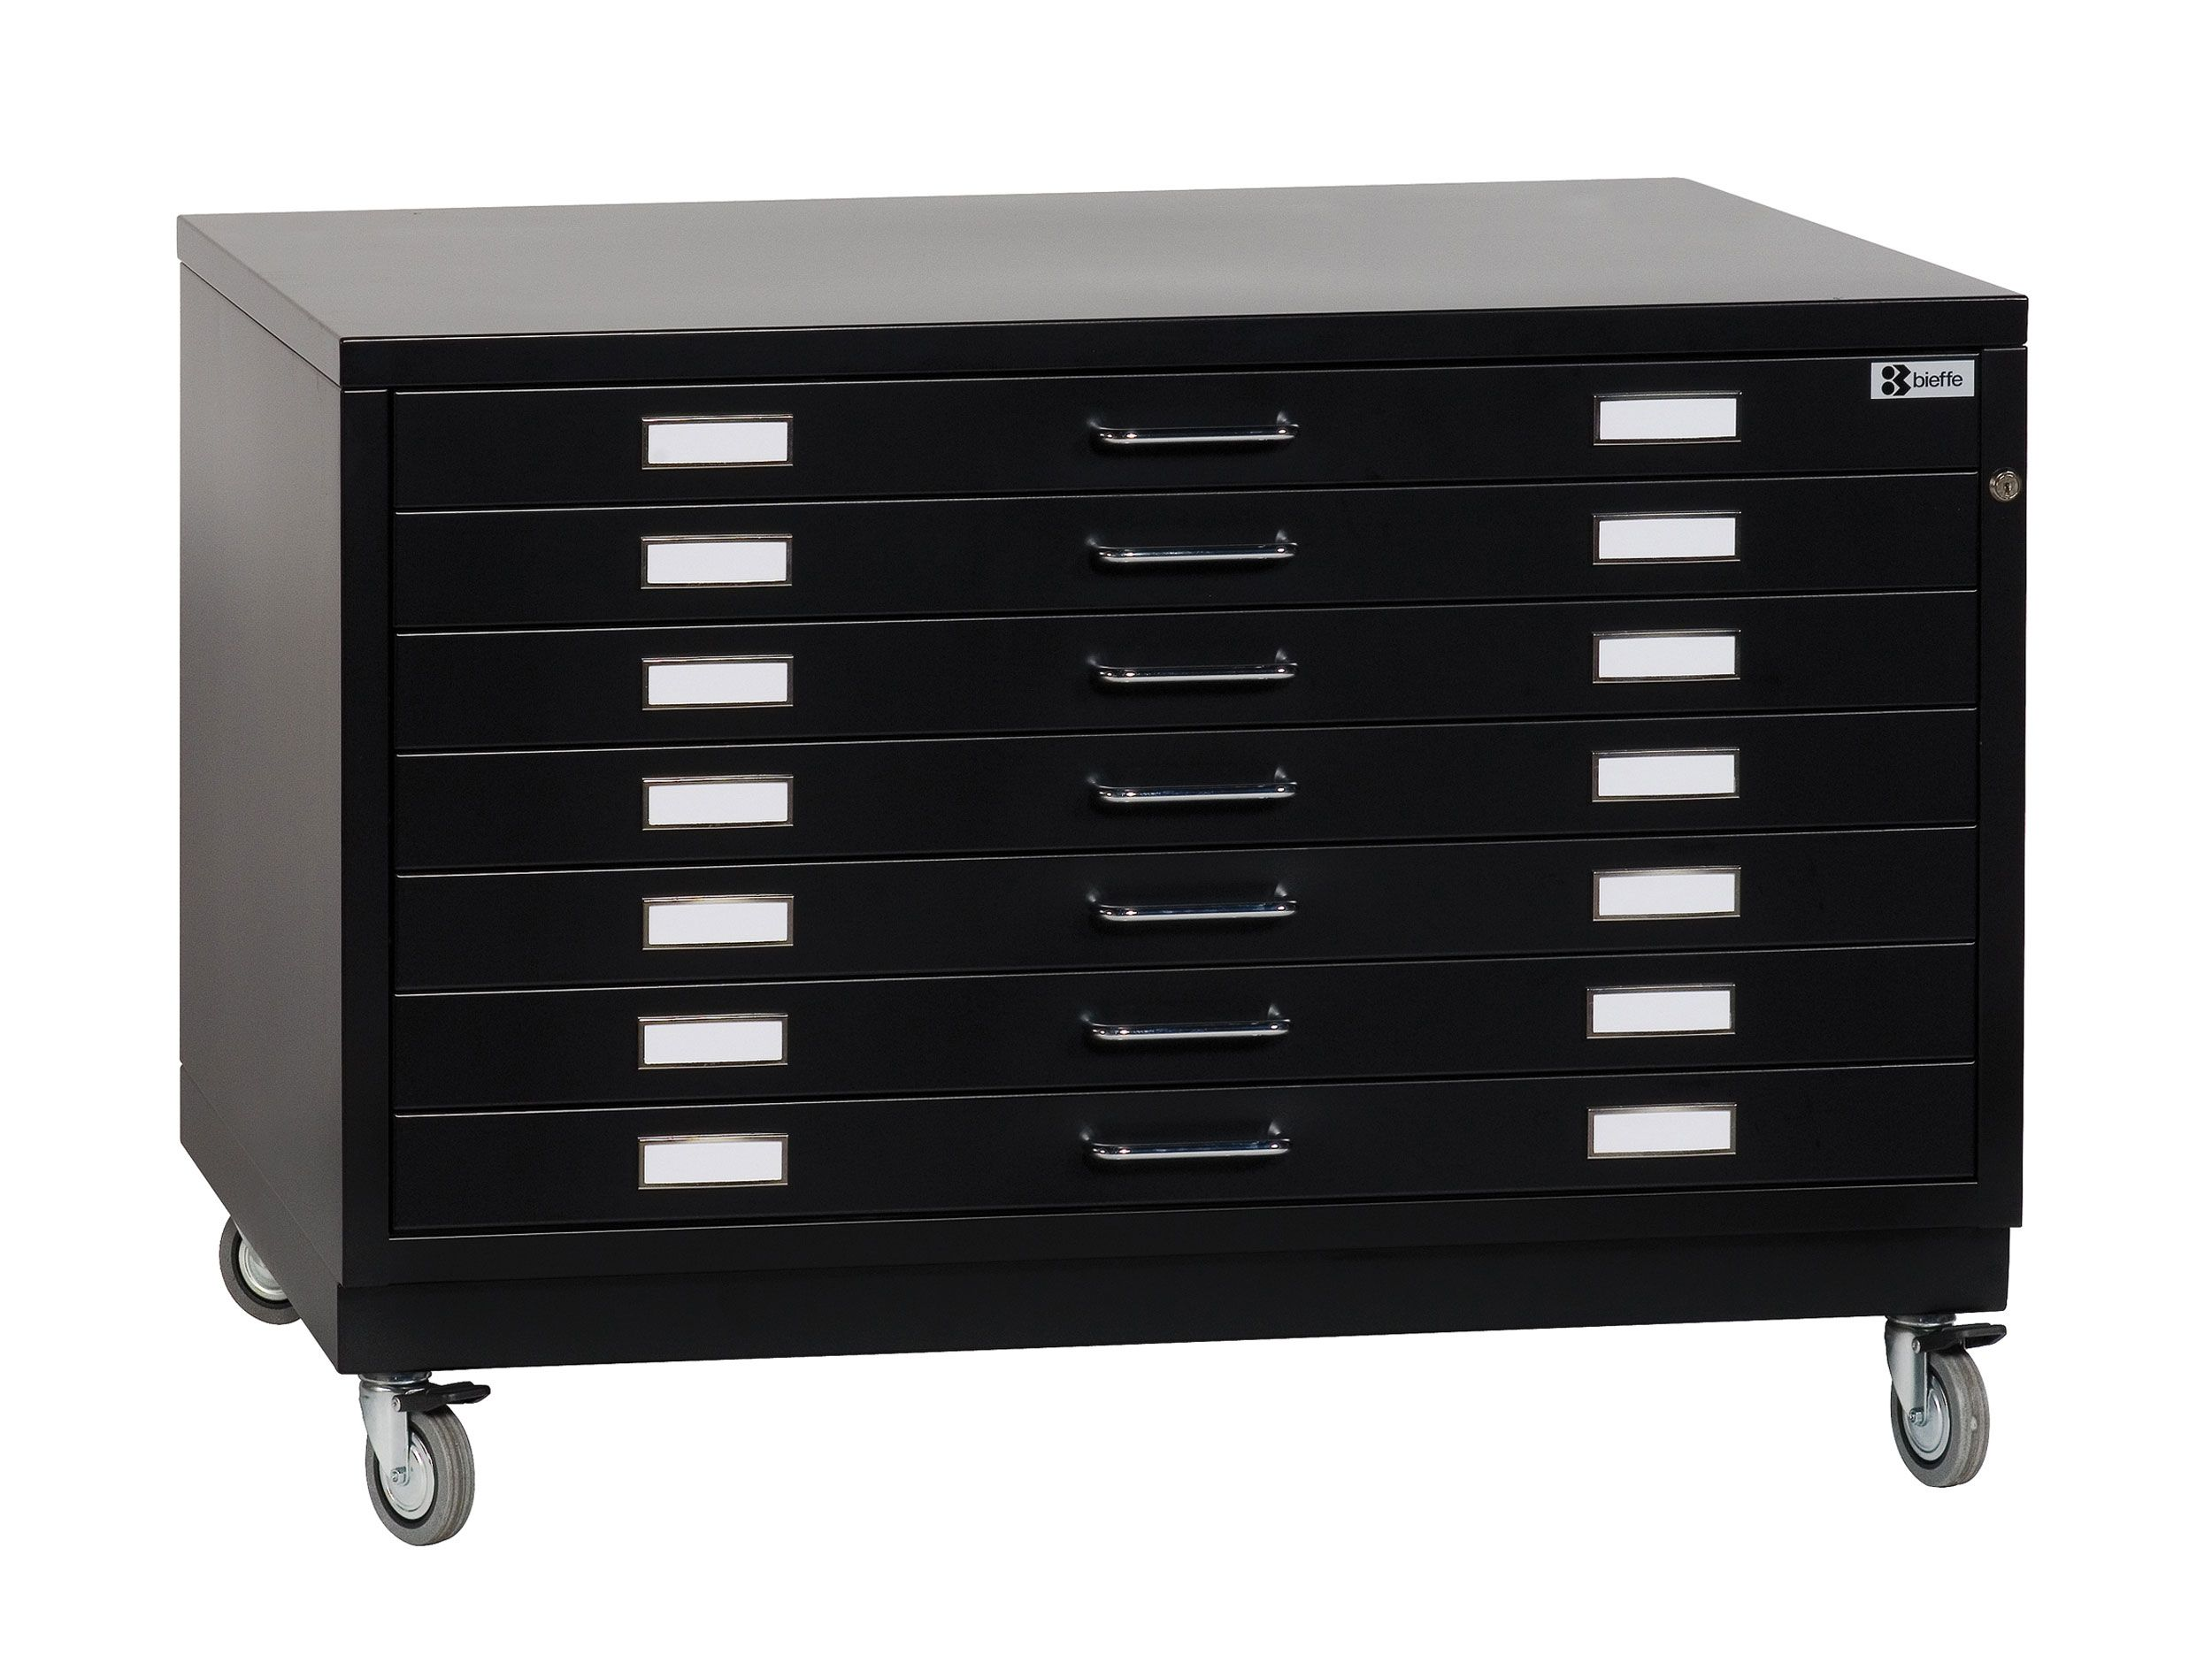 save on discount bieffe bf line flat file, 7 drawers with metal